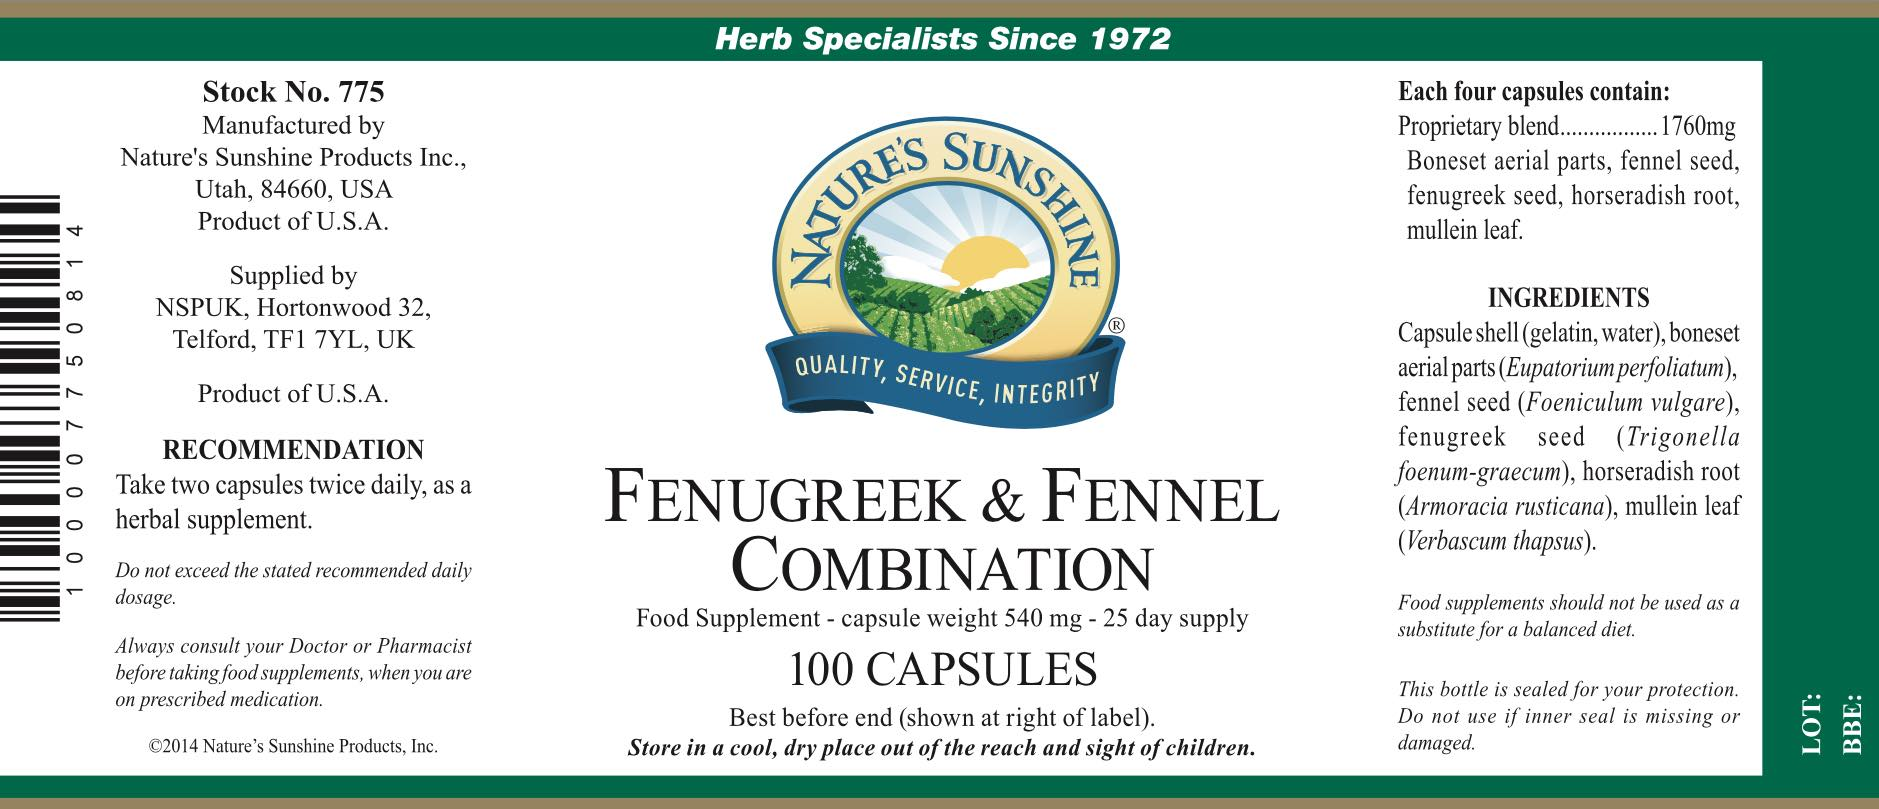 Nature's Sunshine Fenugreek & Fennel Combination - Label